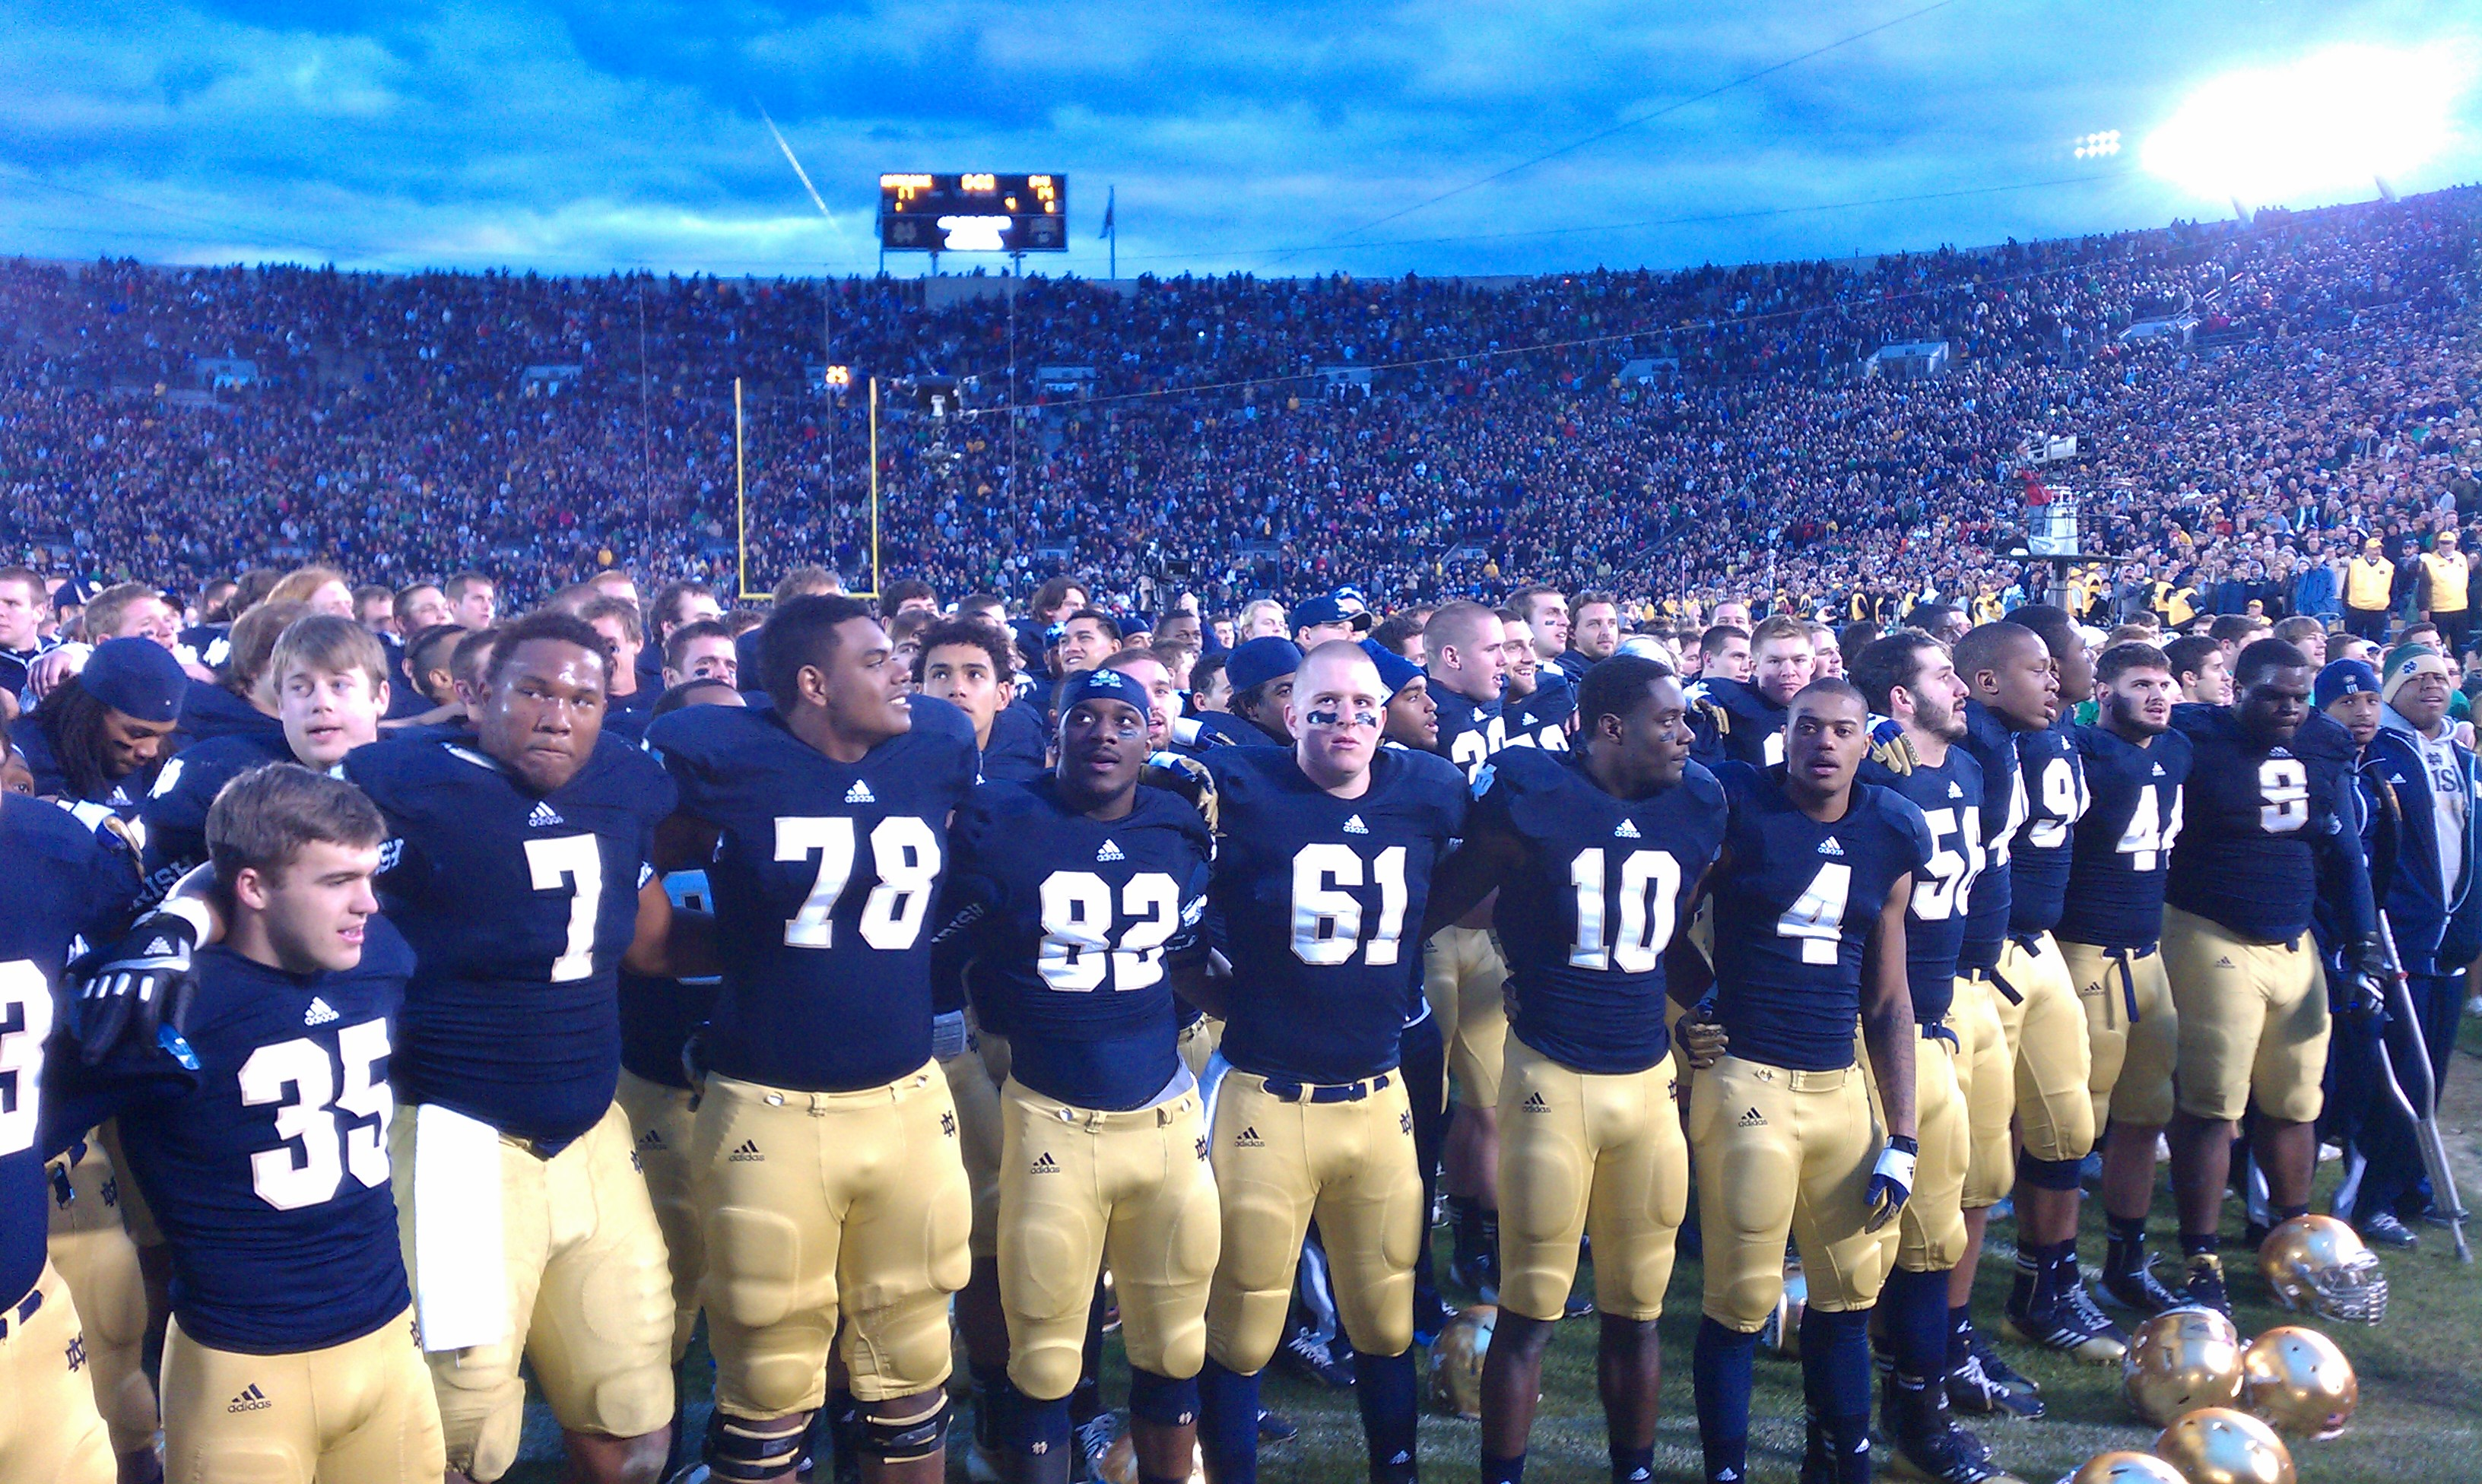 Notre Dame Football HD Wallpapers Hd Wallpapers 3264x1952